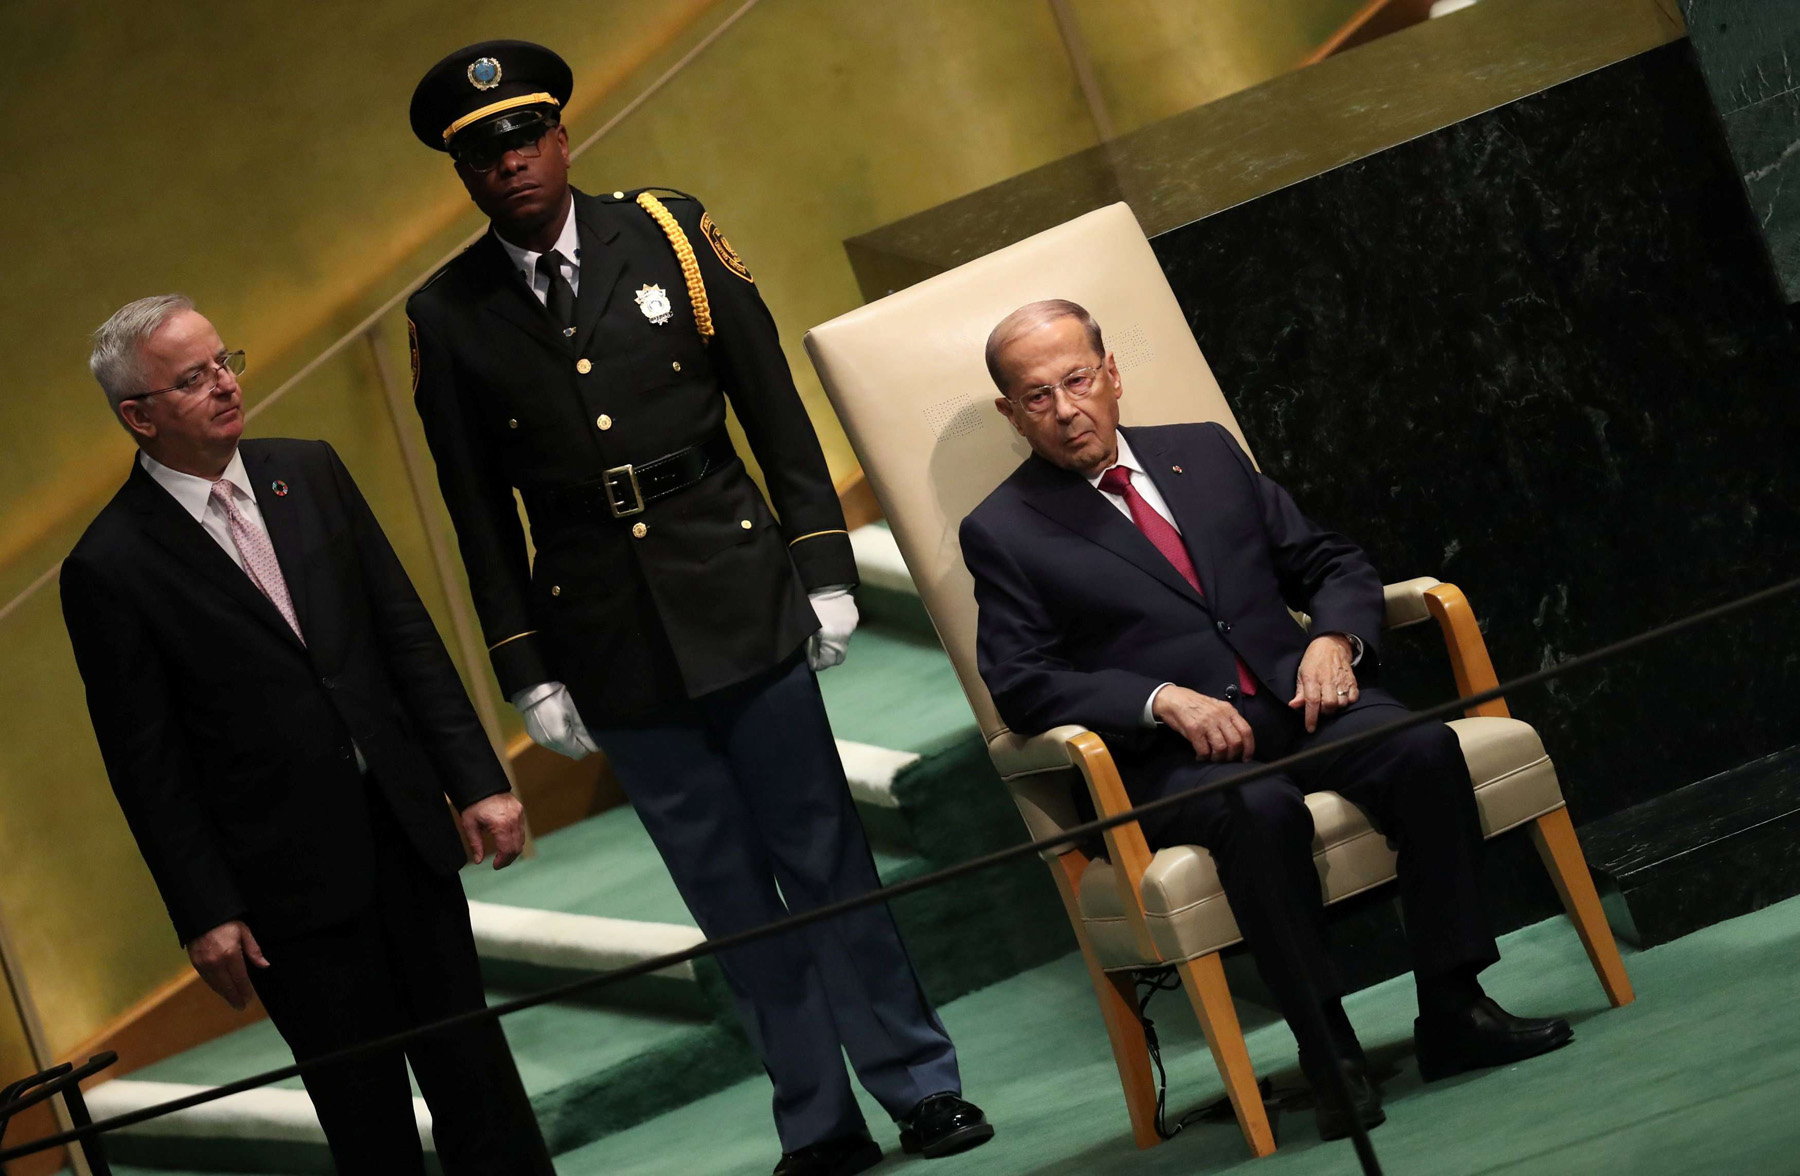 Lebanon's President Michel Aoun sits in the chair reserved for heads of state before delivering his address at UN headquarters in New York, last September. (Reuters)